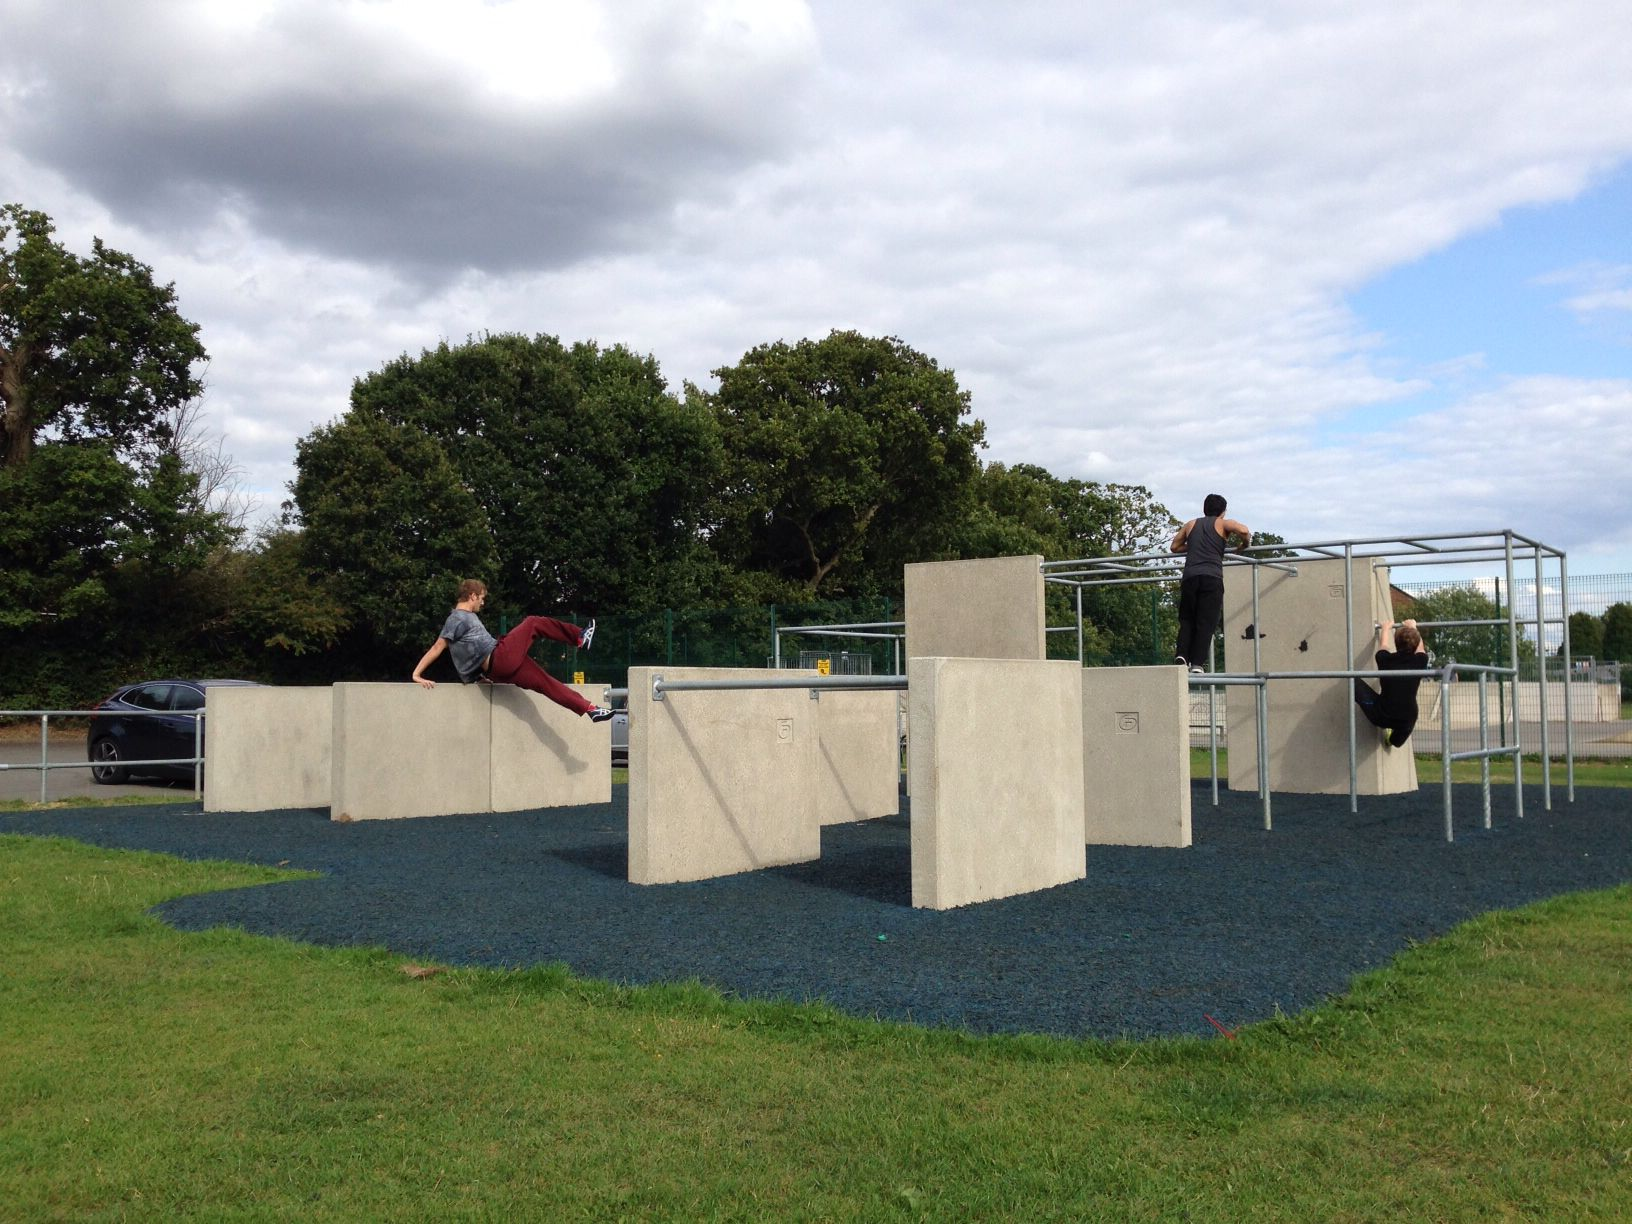 Baldwins Lane Croxley Green Parkour Park What An Amazing Place Designed And Installed By Freemove Www Freemove Co Uk Parkour Parkour Training Outdoor Gym